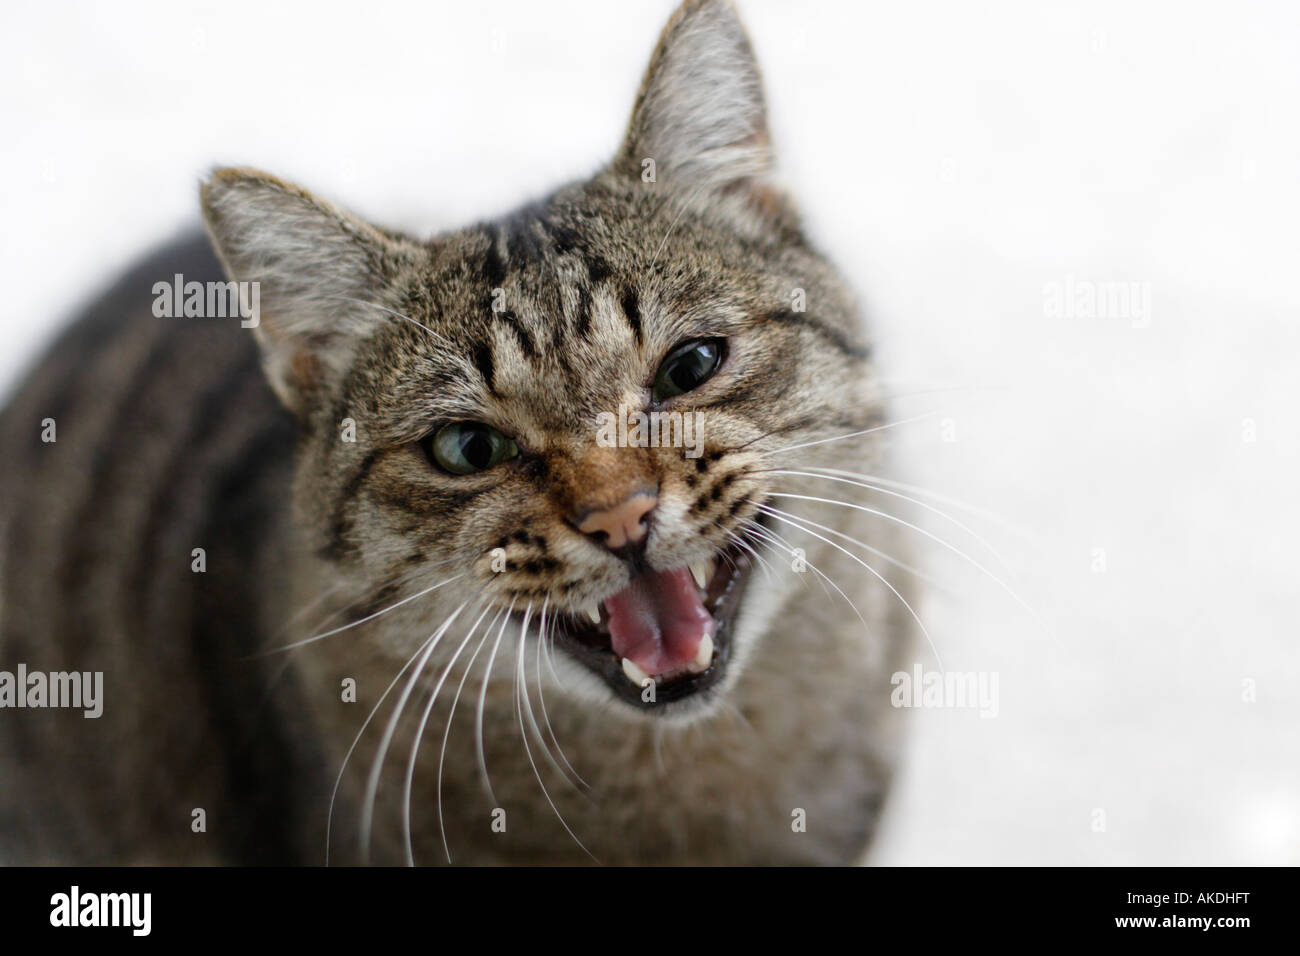 Hungry Tom cat jowling - Stock Image